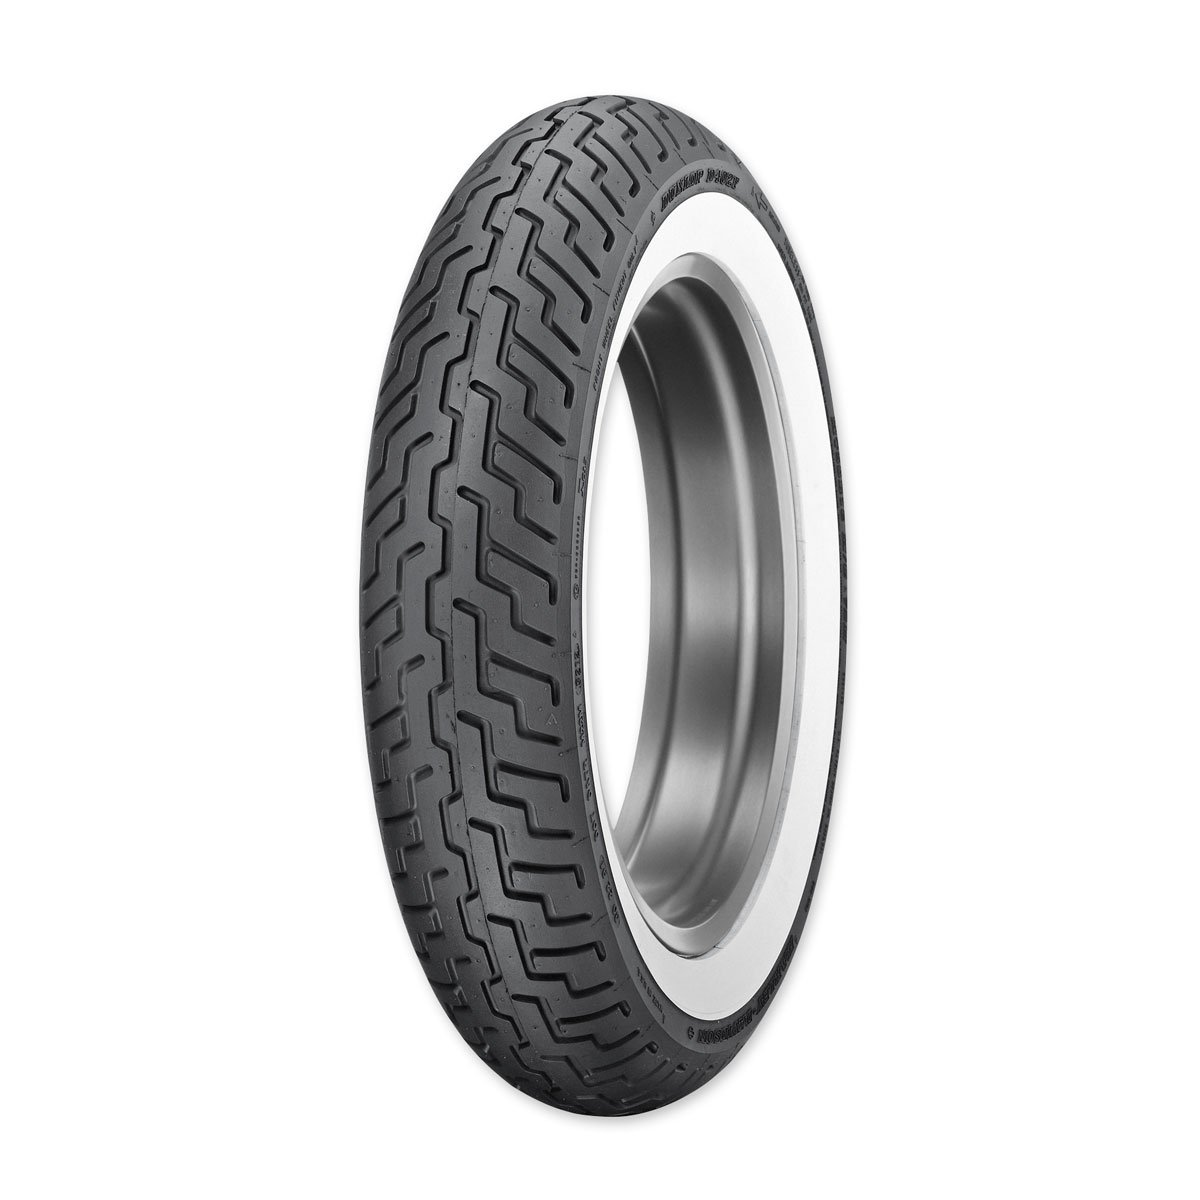 Dunlop D402 MT90B16 Wide Whitewall Front Tire 3022-91